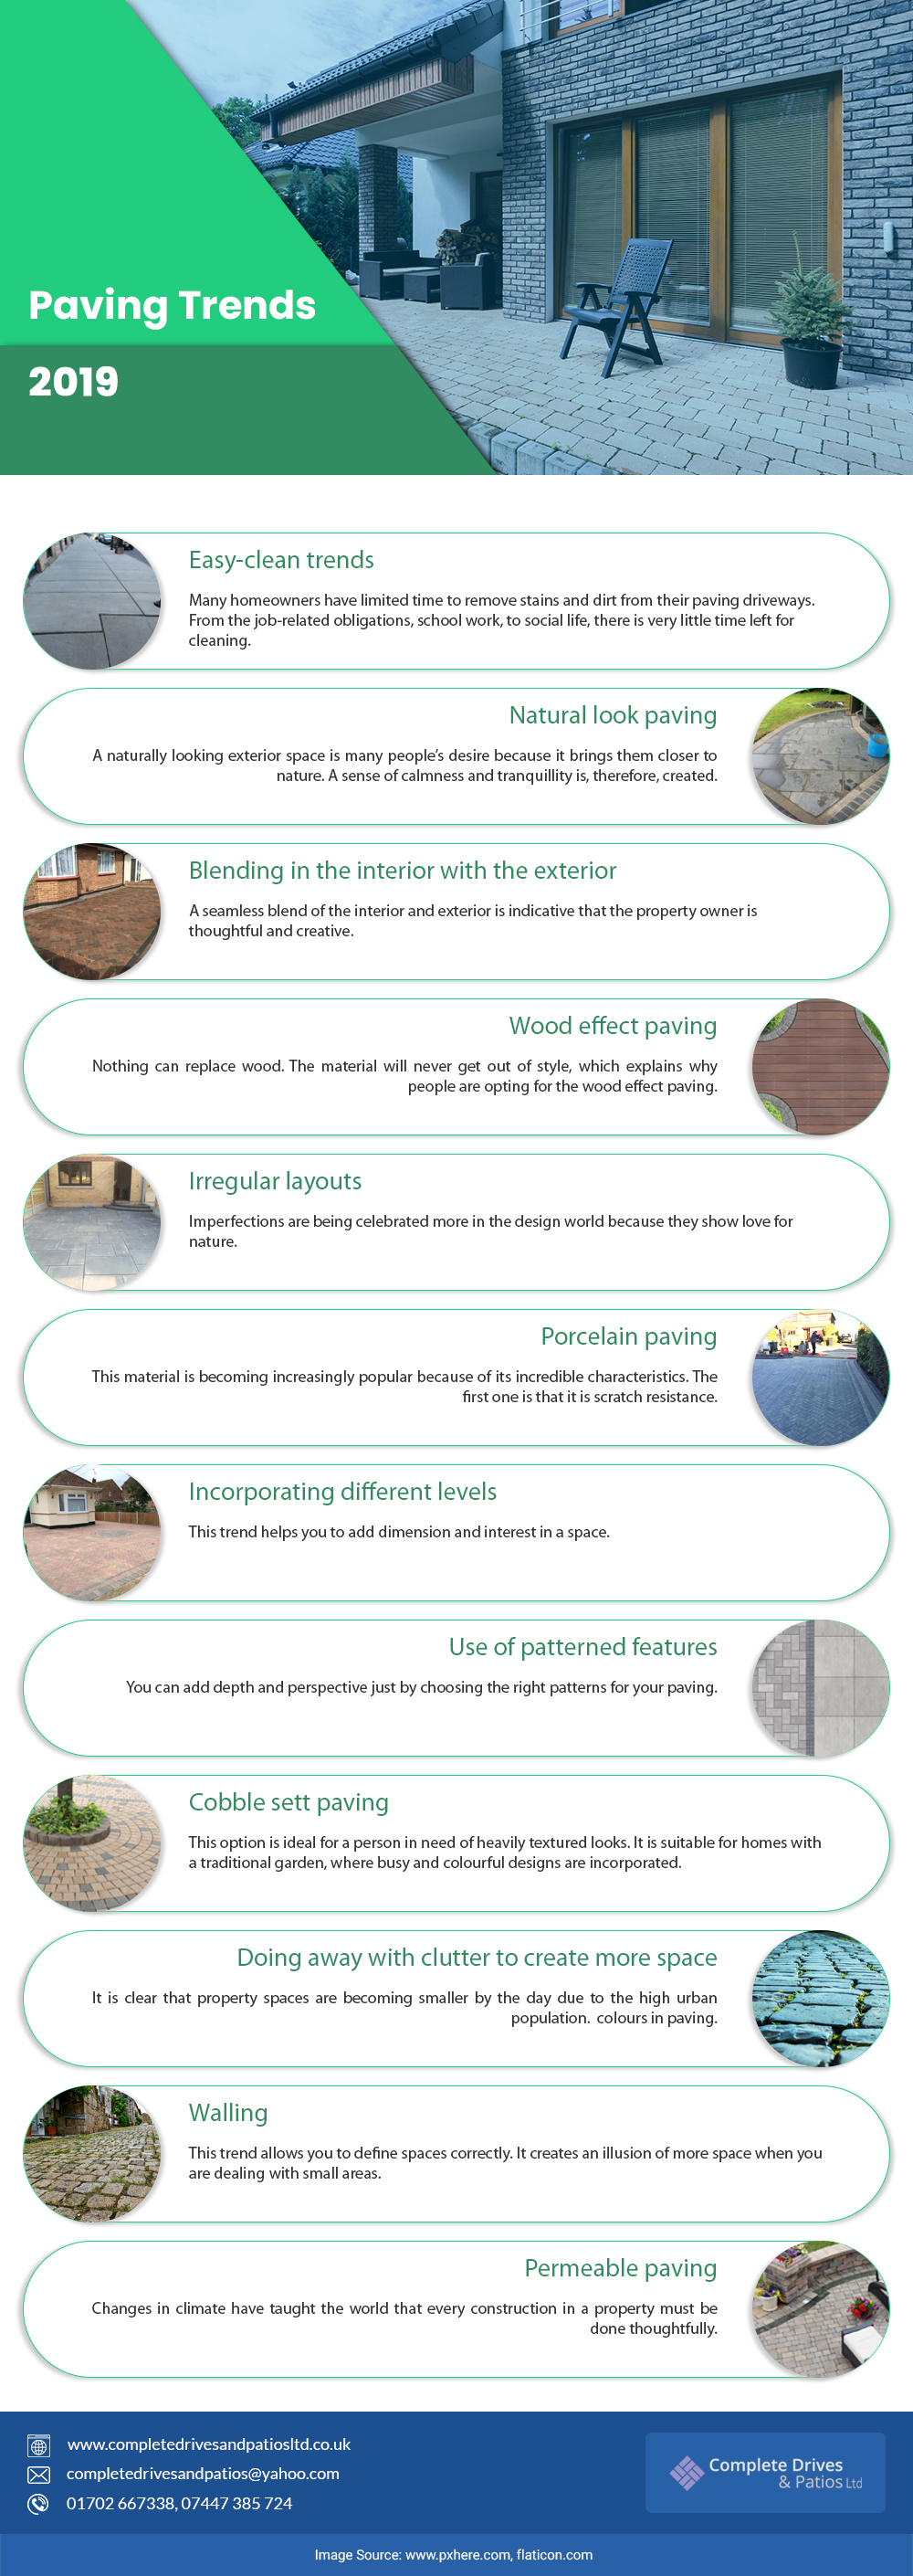 paving trends